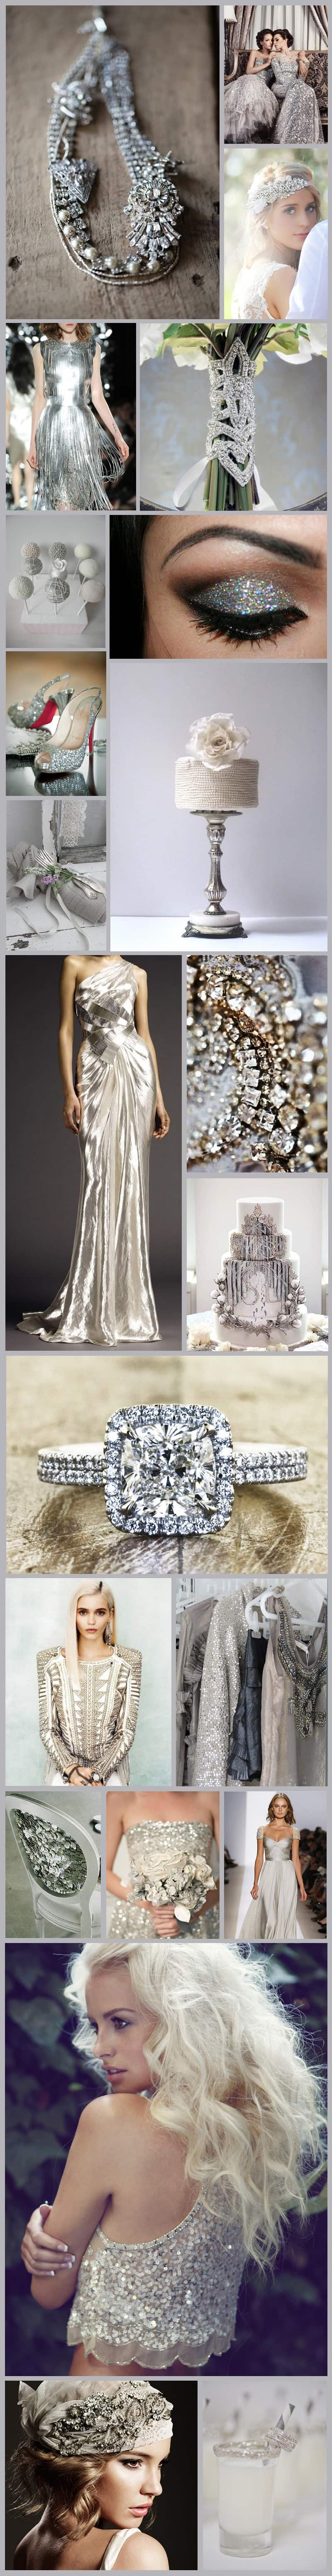 Silver Lining Inspiration Board